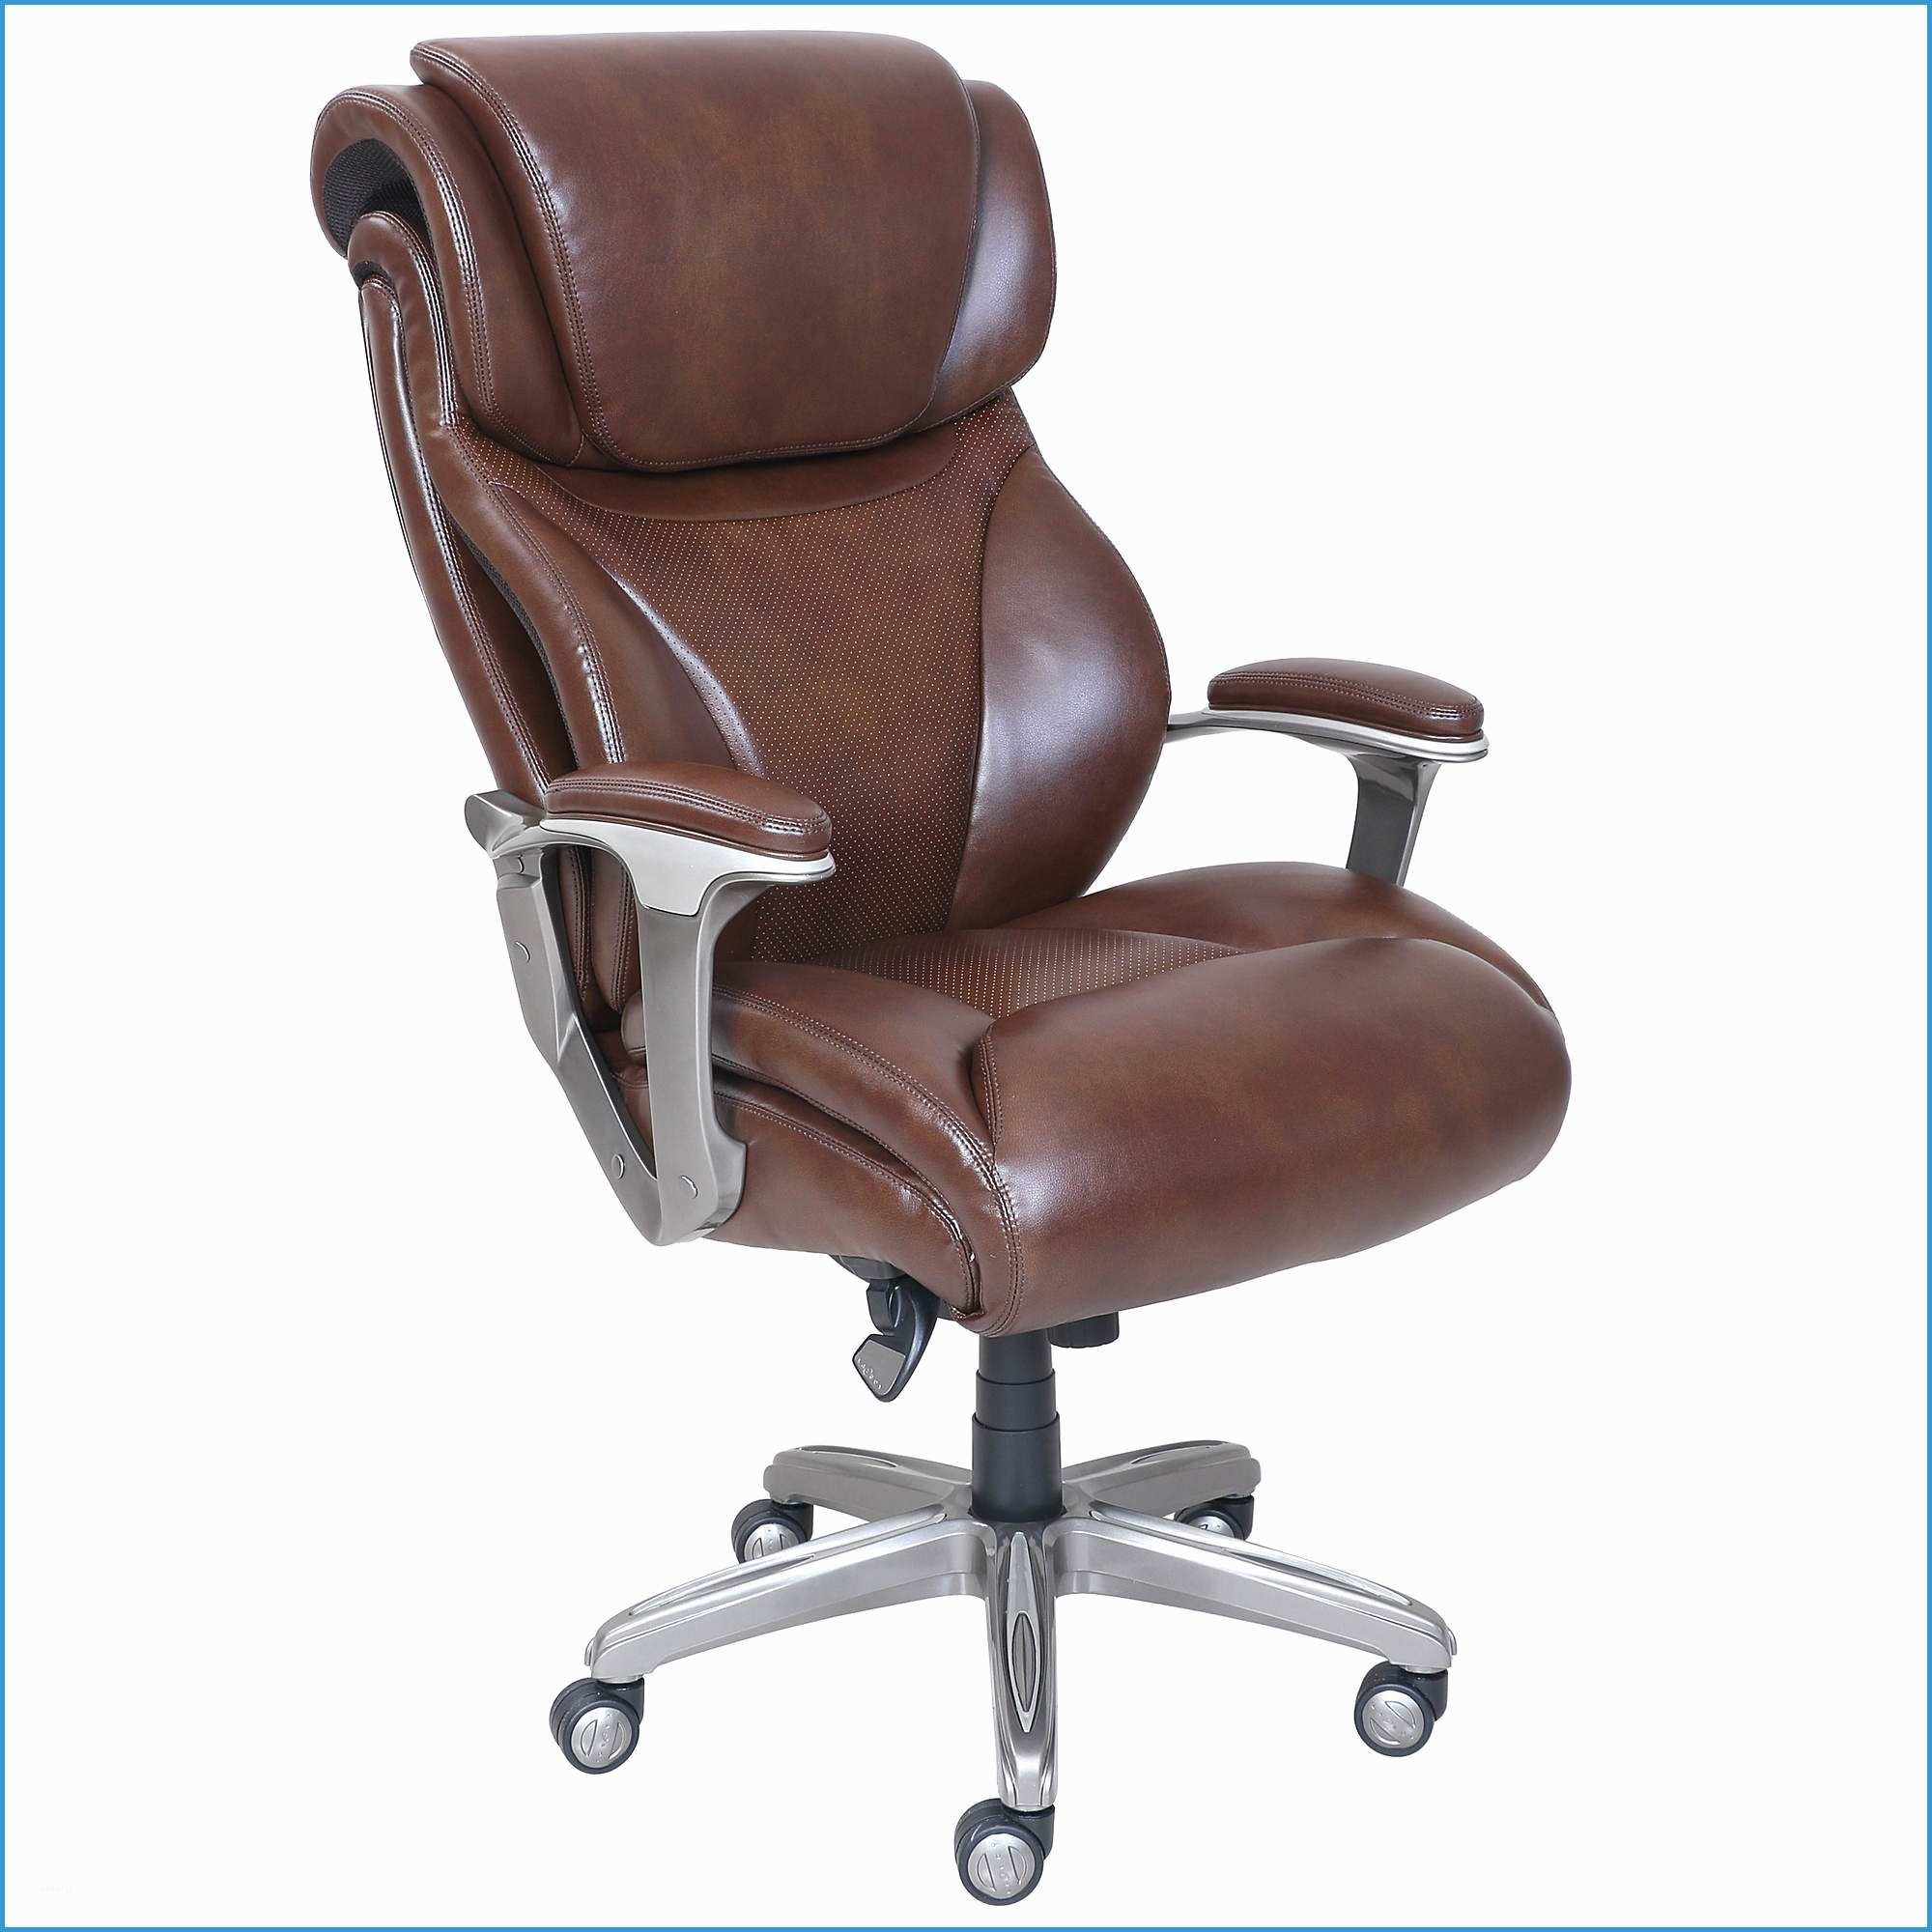 lane big and tall office chair marvelous la z boy big and tall chair bj s